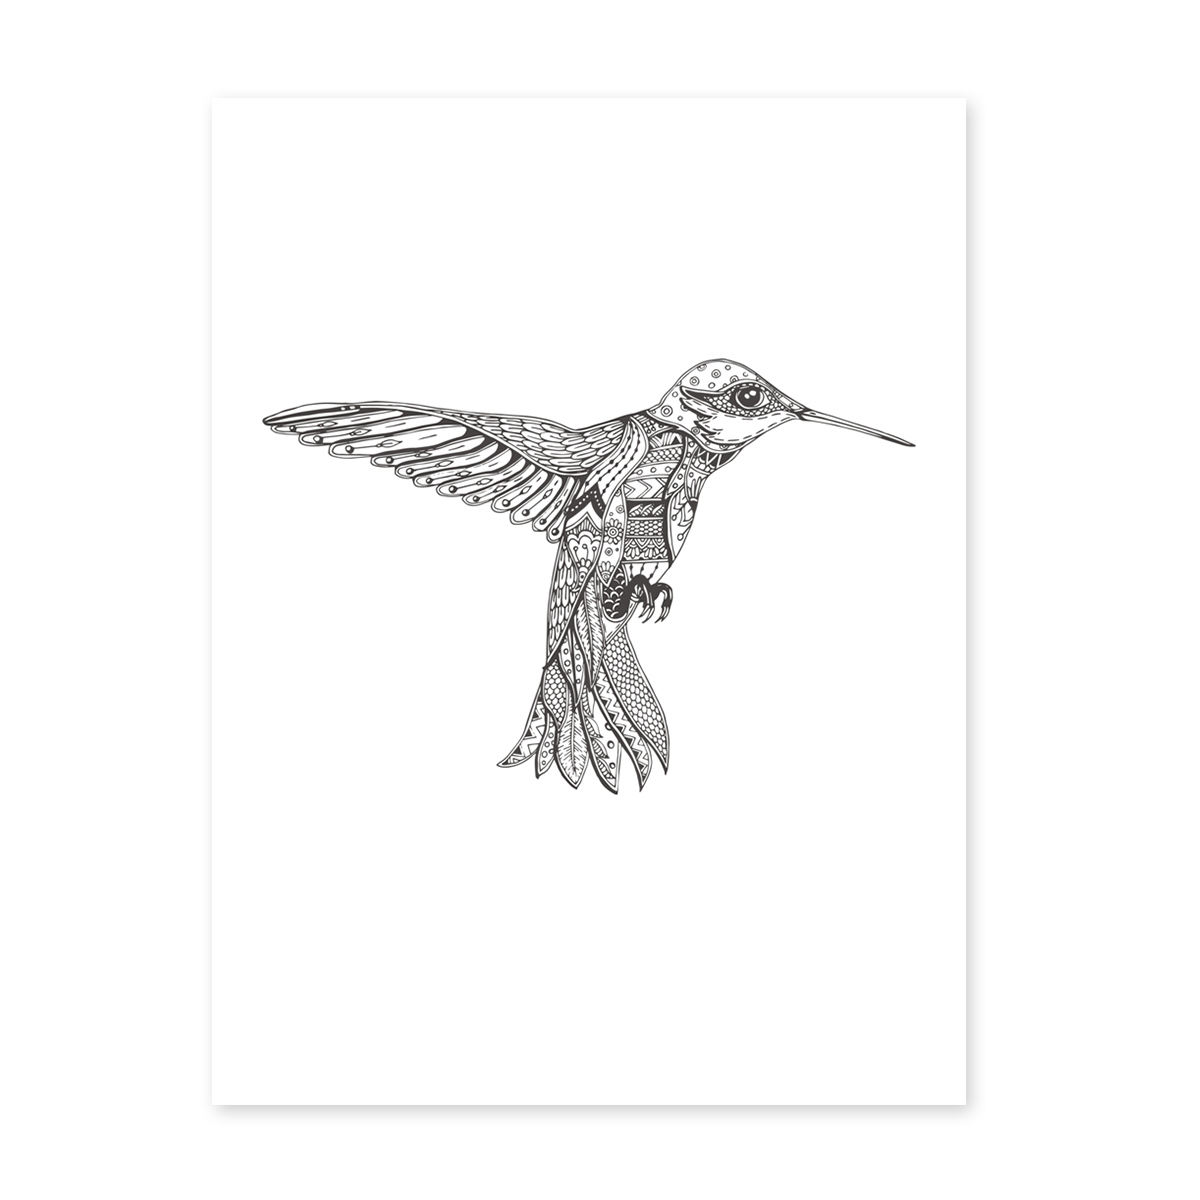 design poster 39 kolibri 39 30x40 cm schwarz weiss motiv vogel. Black Bedroom Furniture Sets. Home Design Ideas